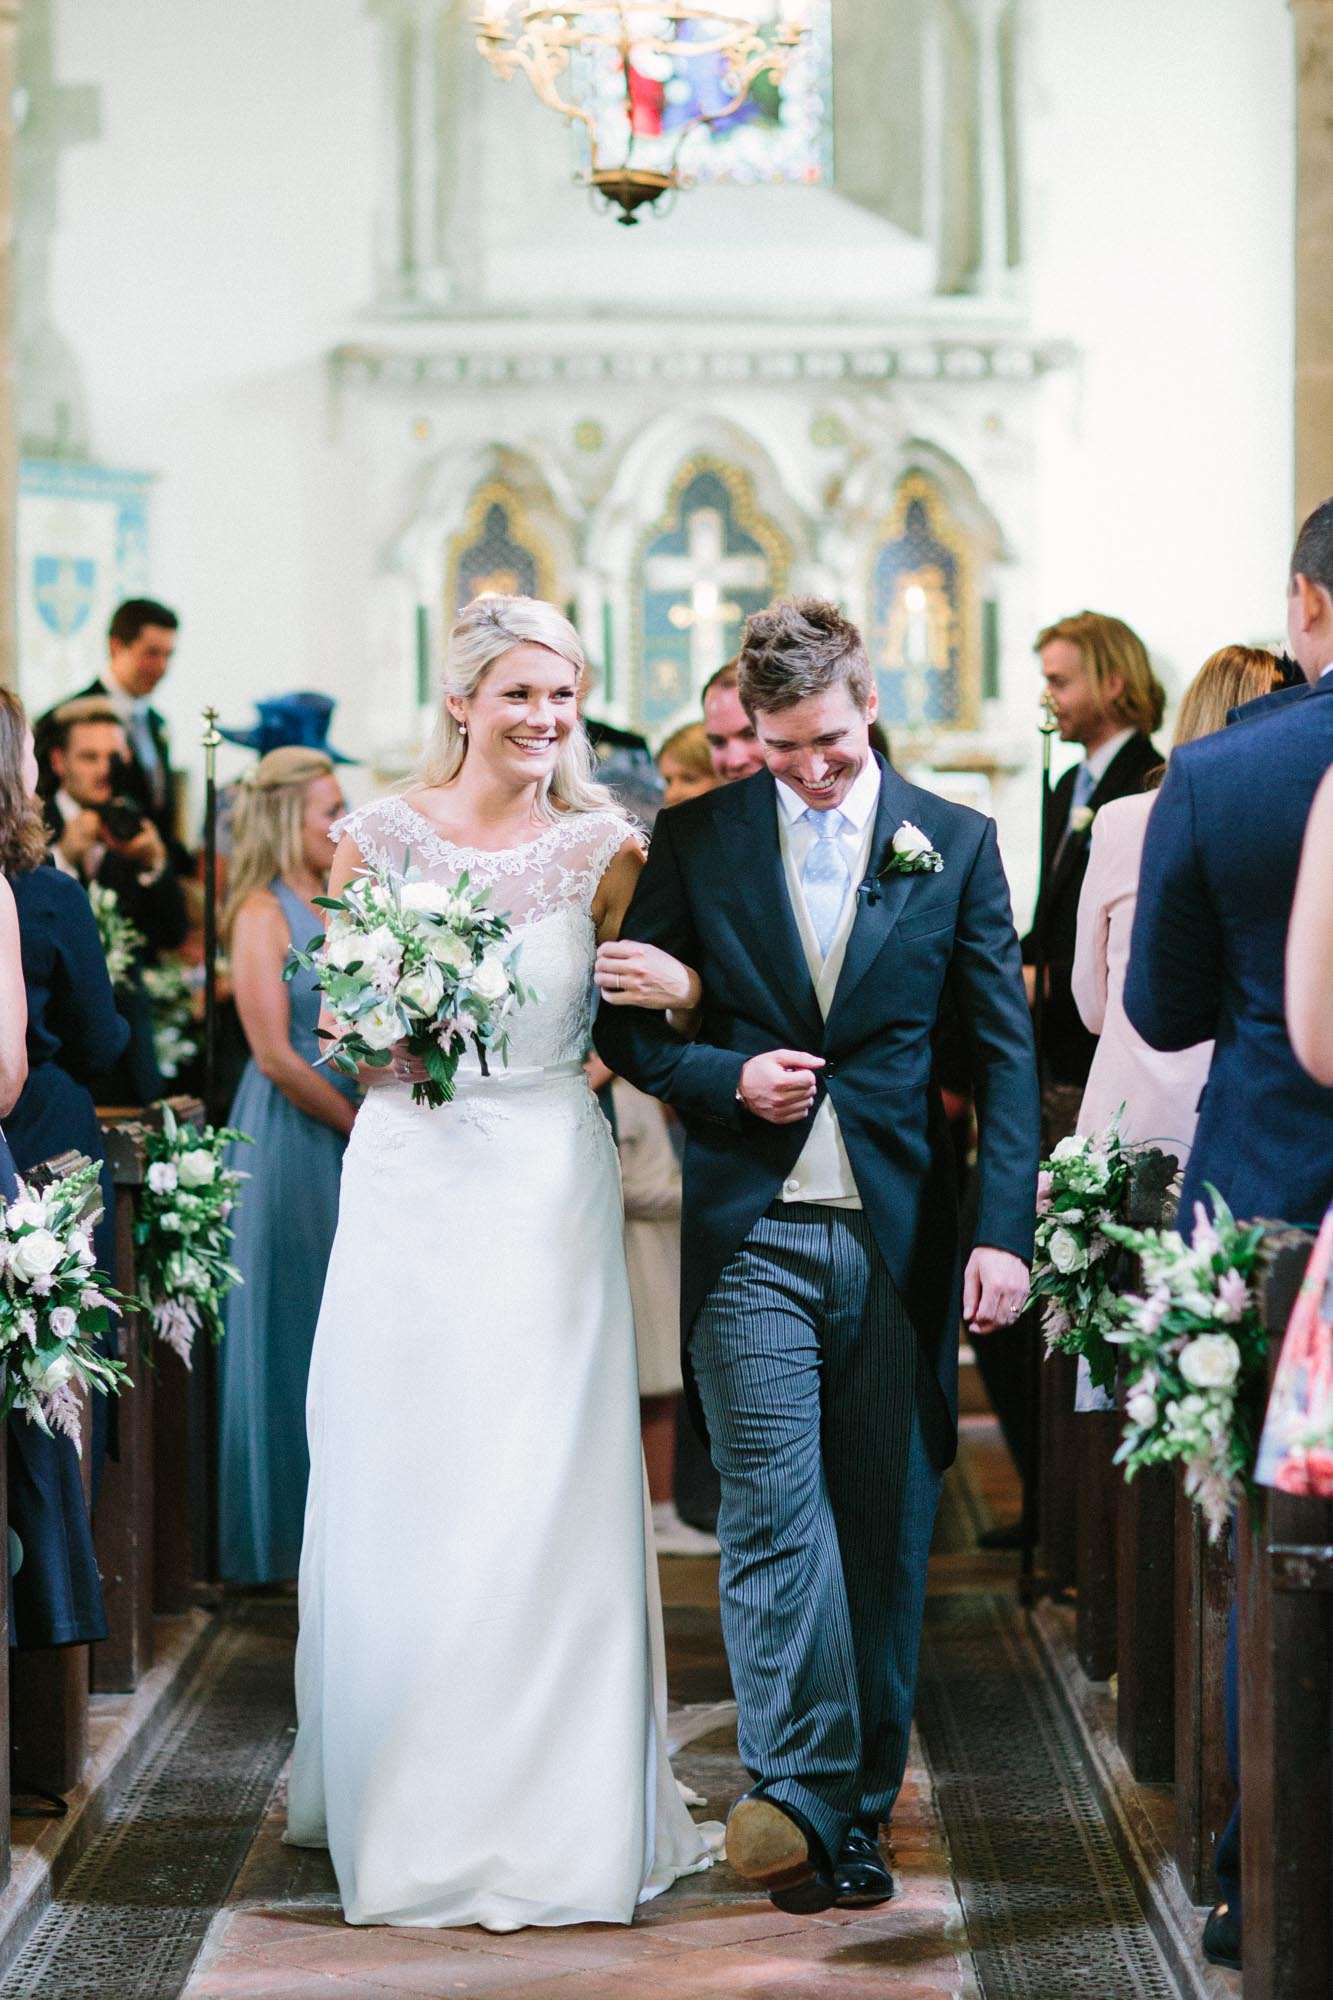 Bride and groom smiling and exiting church